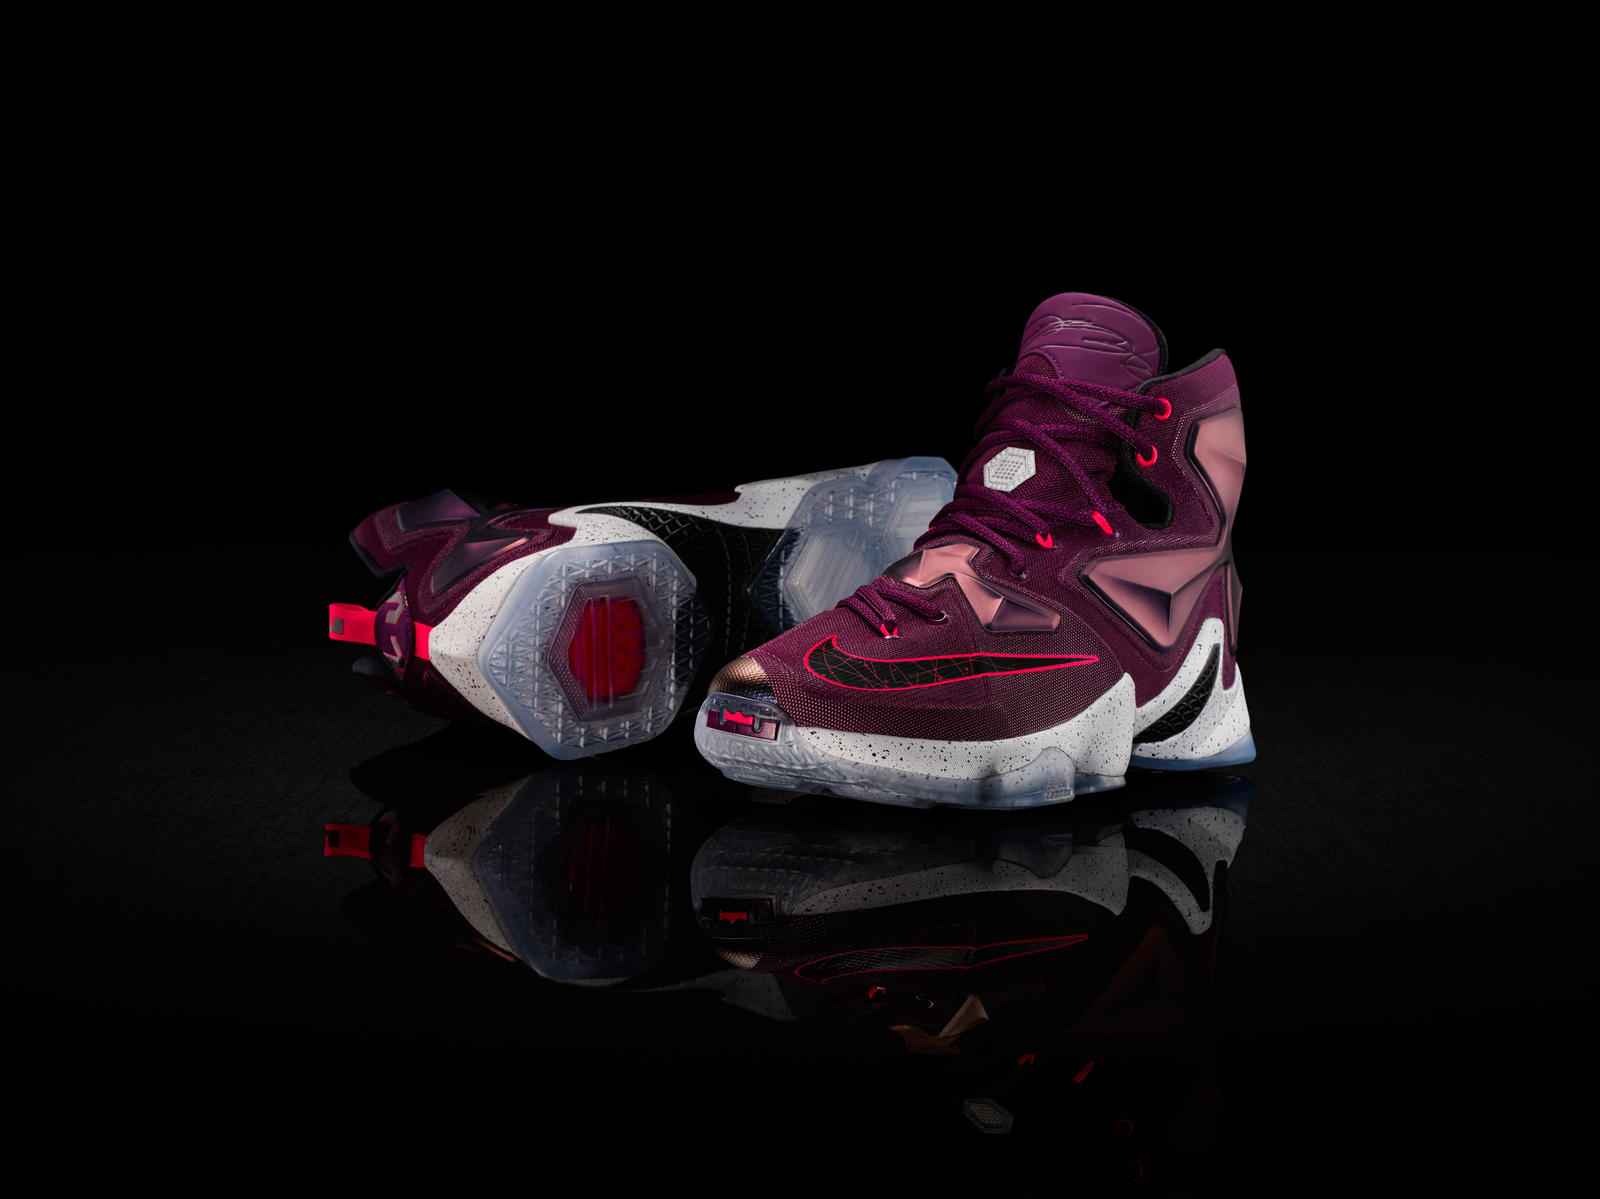 classic fit 030ce 5a197 LEBRON 13  Built for Explosiveness - Nike News